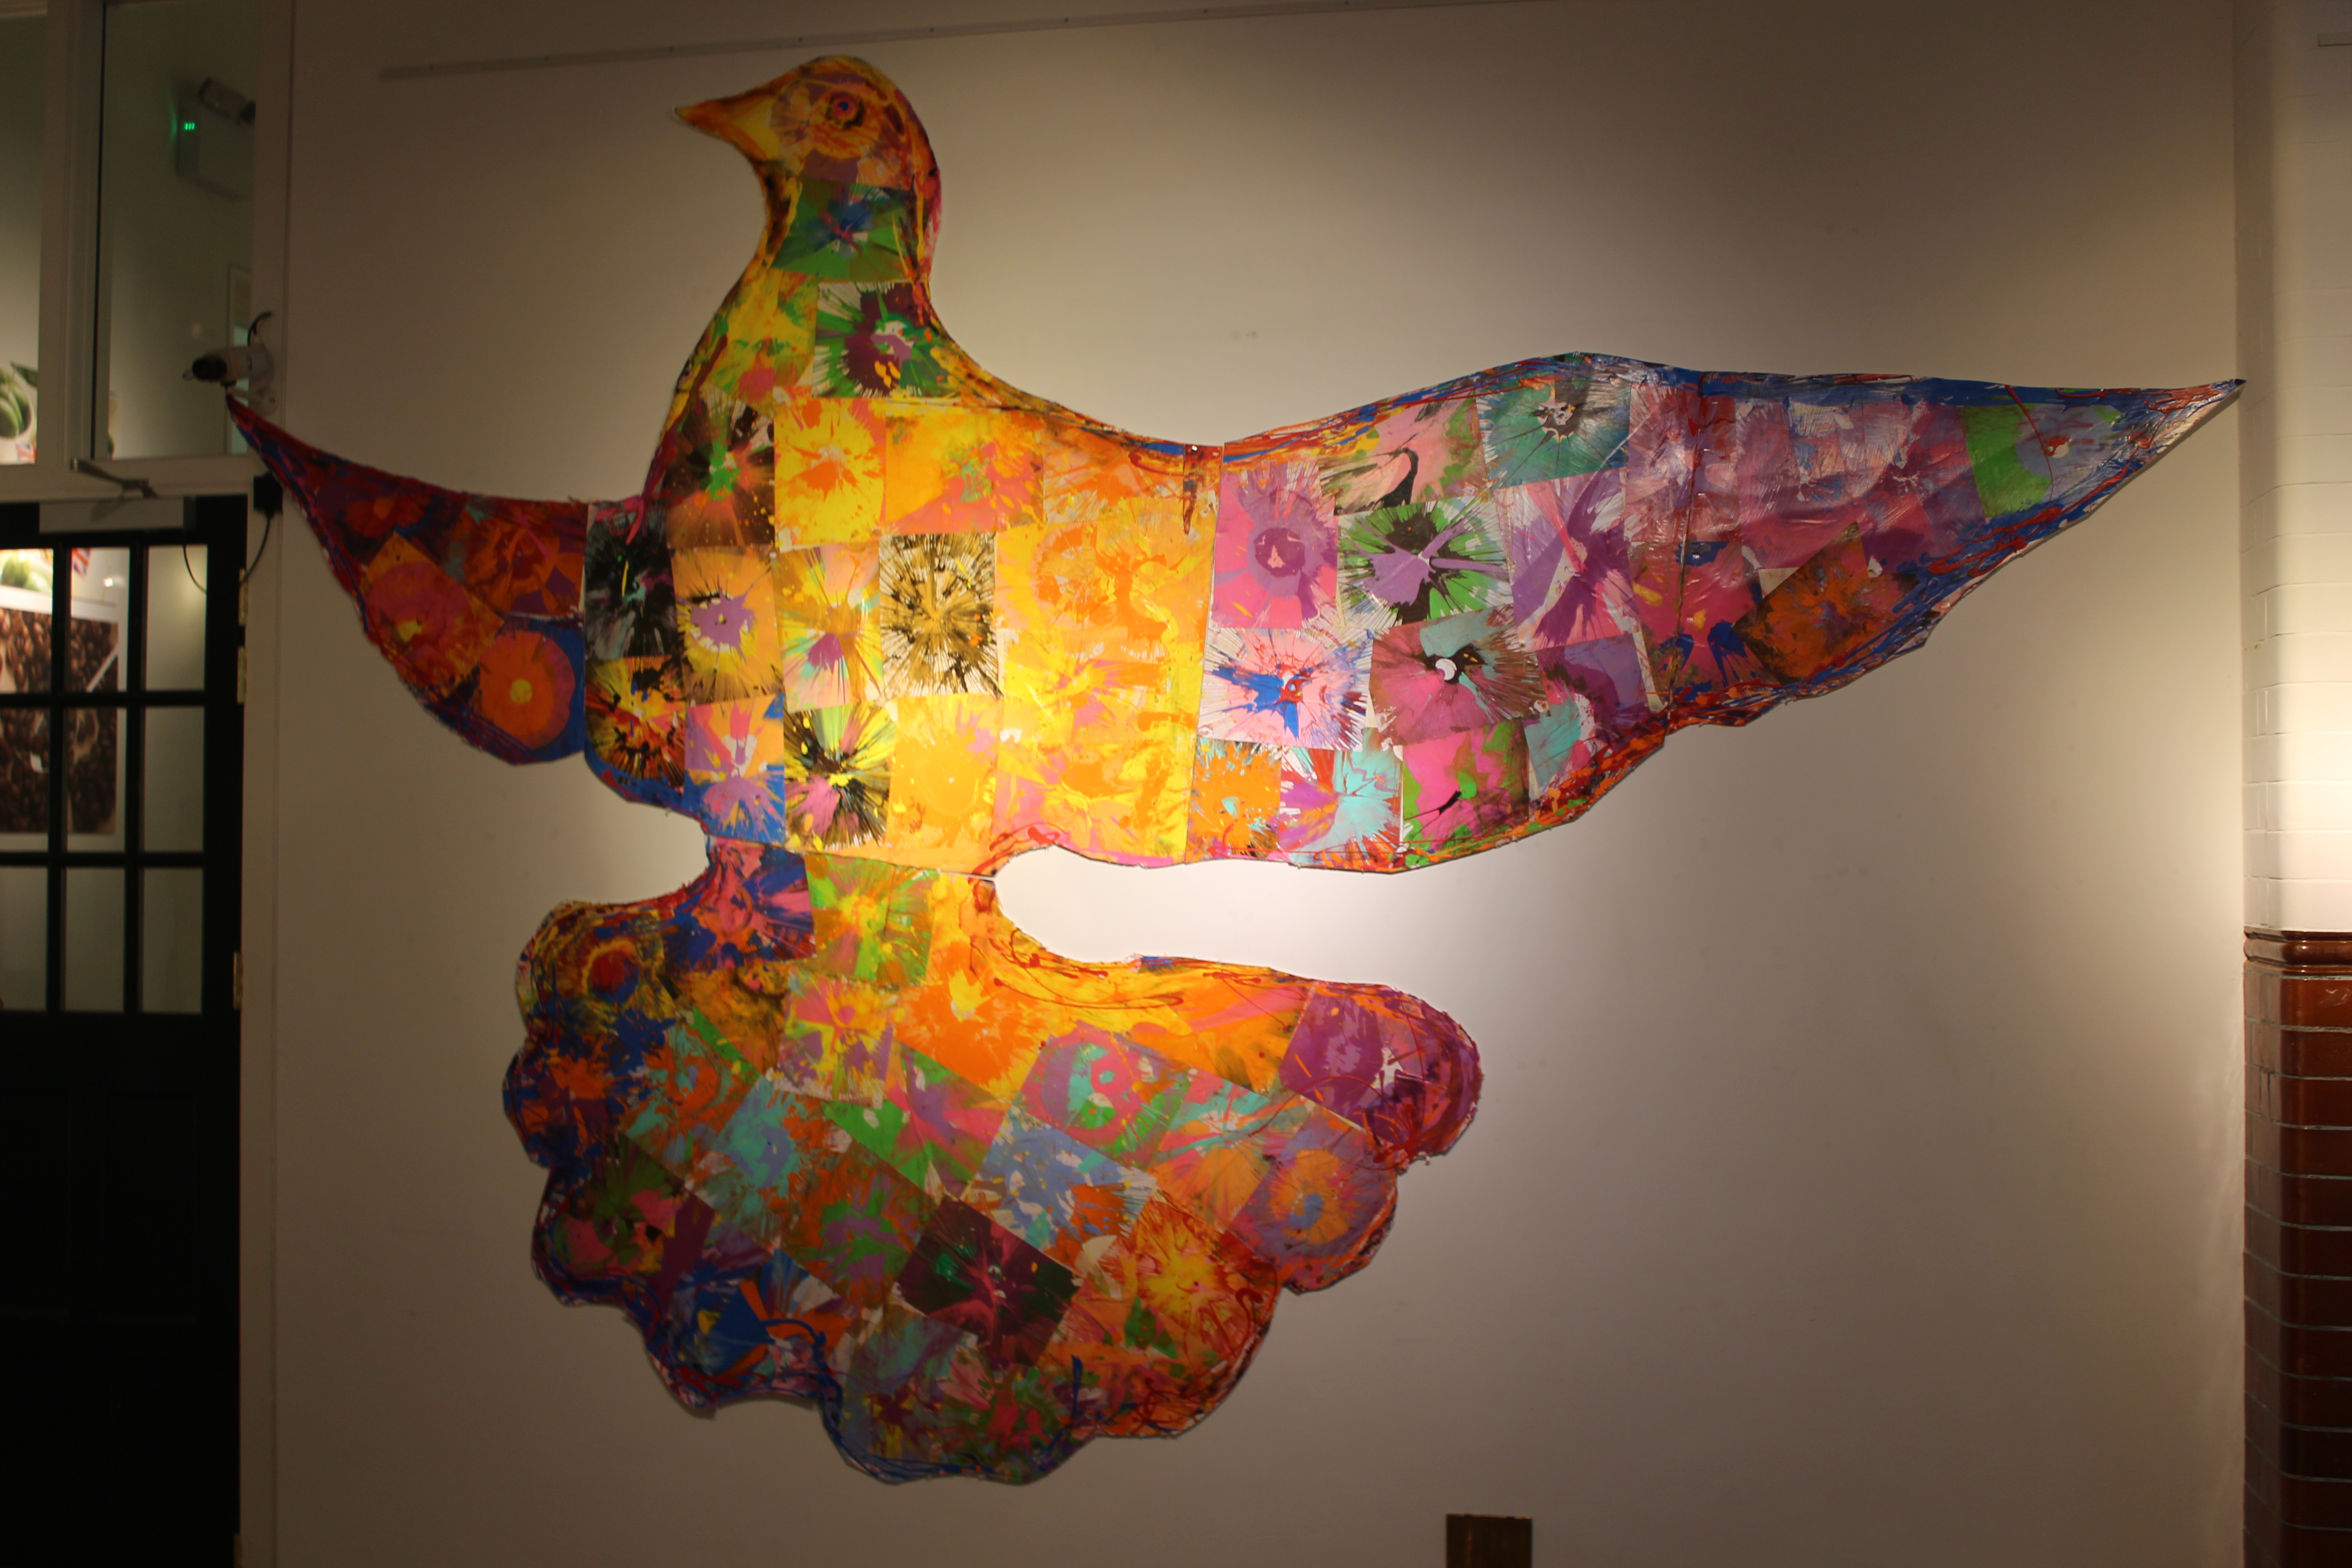 A photograph of a large dove coloured in by spin art